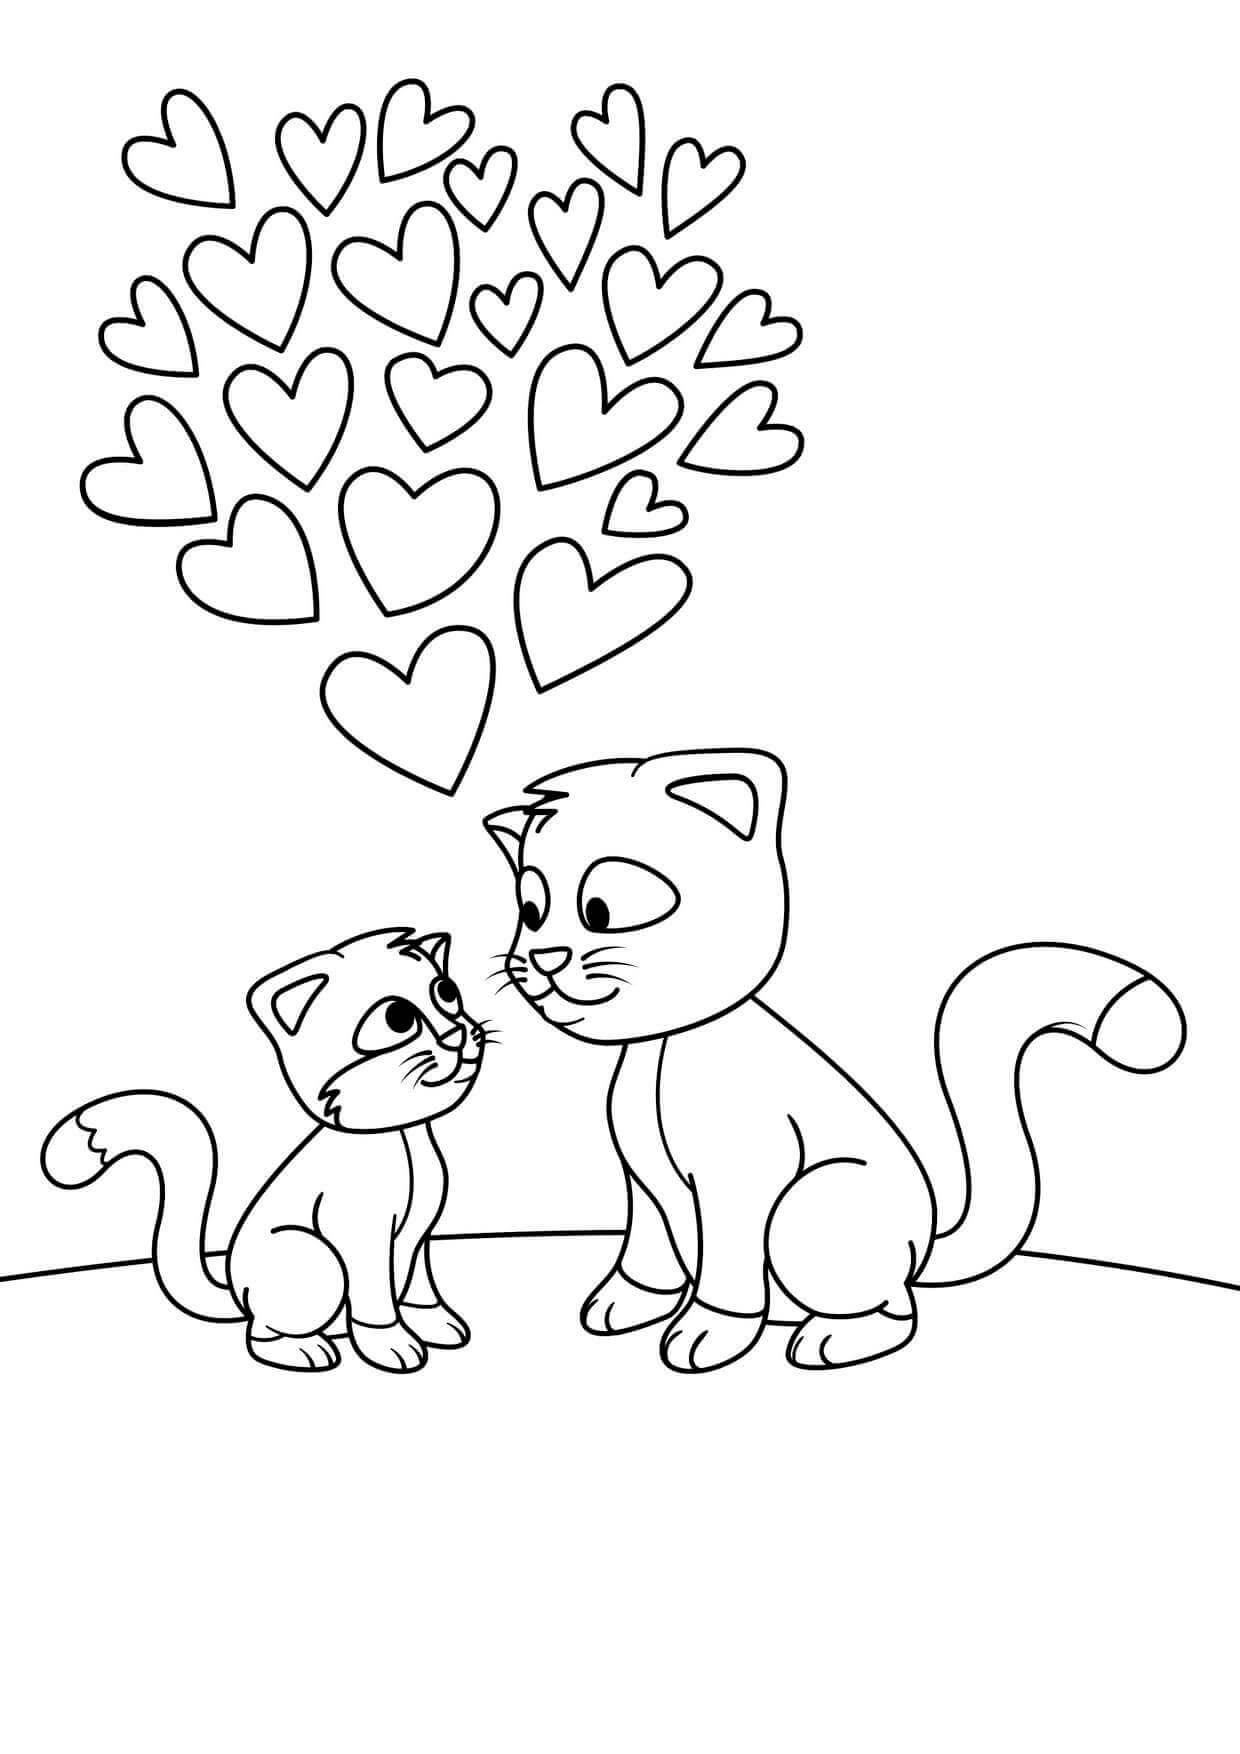 coloring girl sheets free printable coloring pages for girls sheets coloring girl 1 1